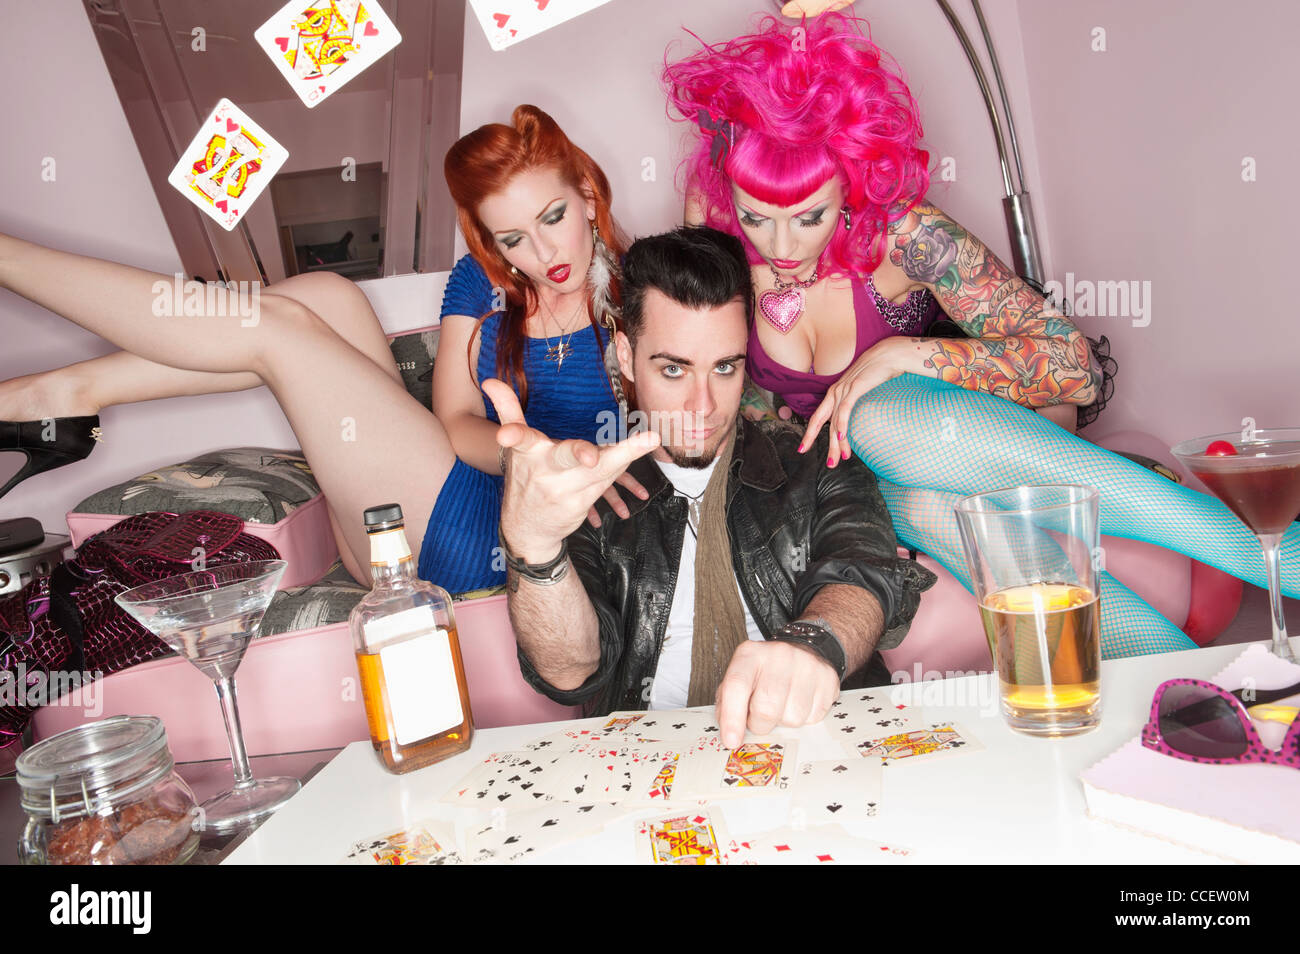 Man tossing playing cards in air with women sitting besides him Stock Photo